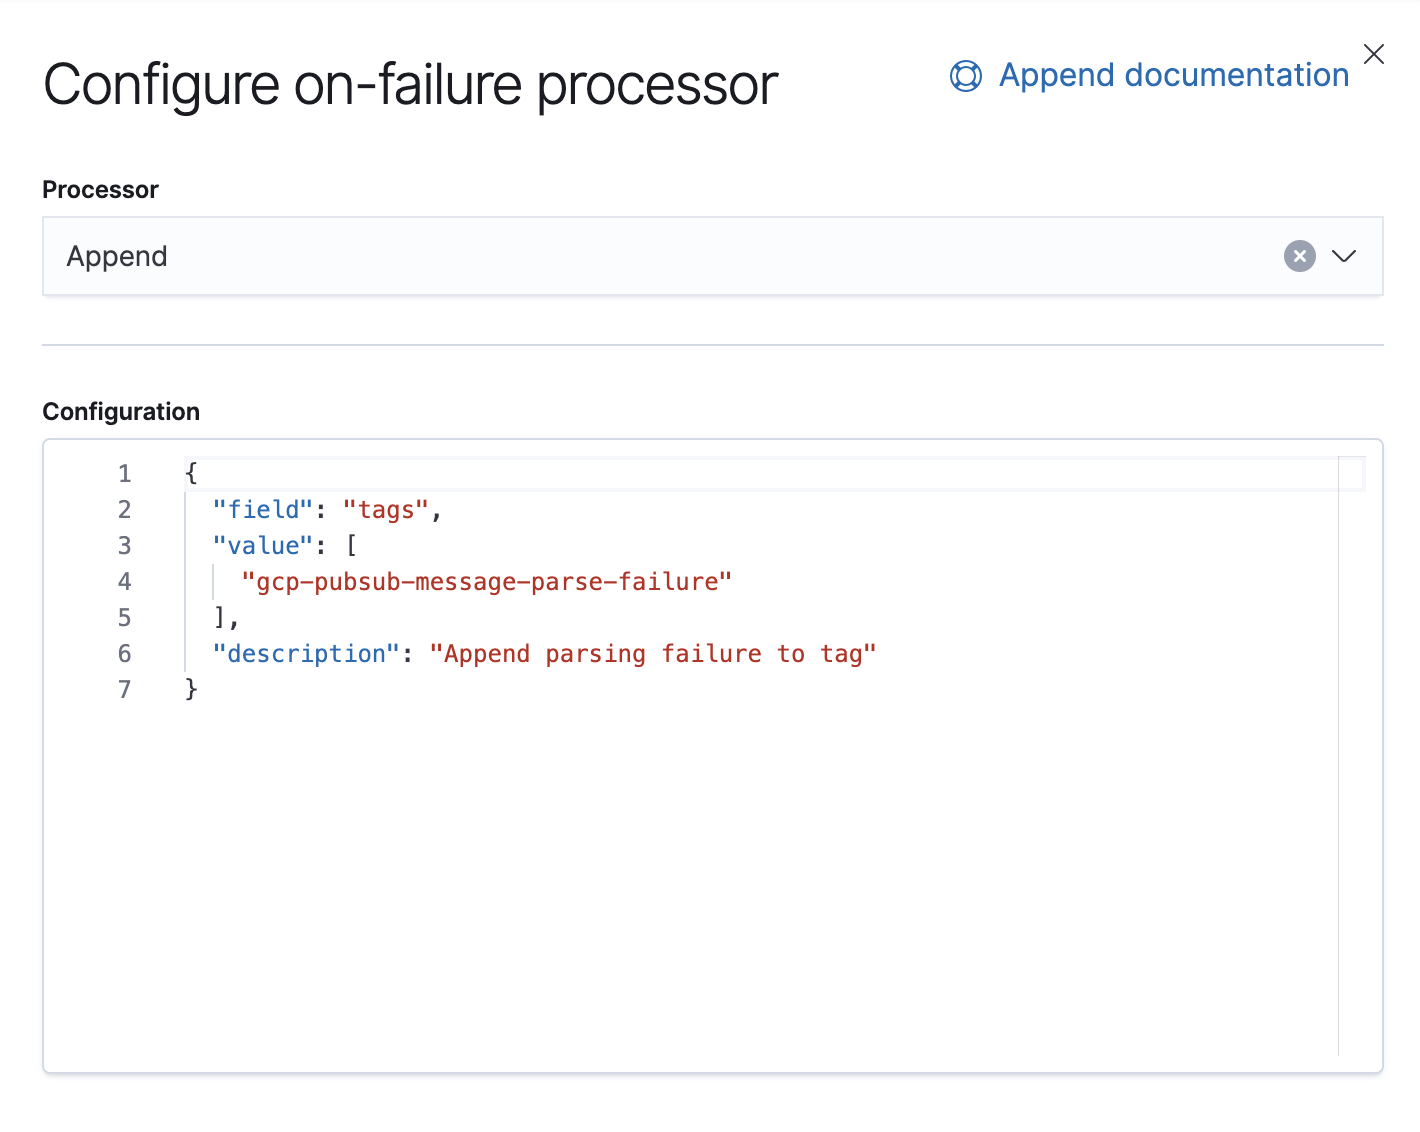 Configurer le processeur on_failure